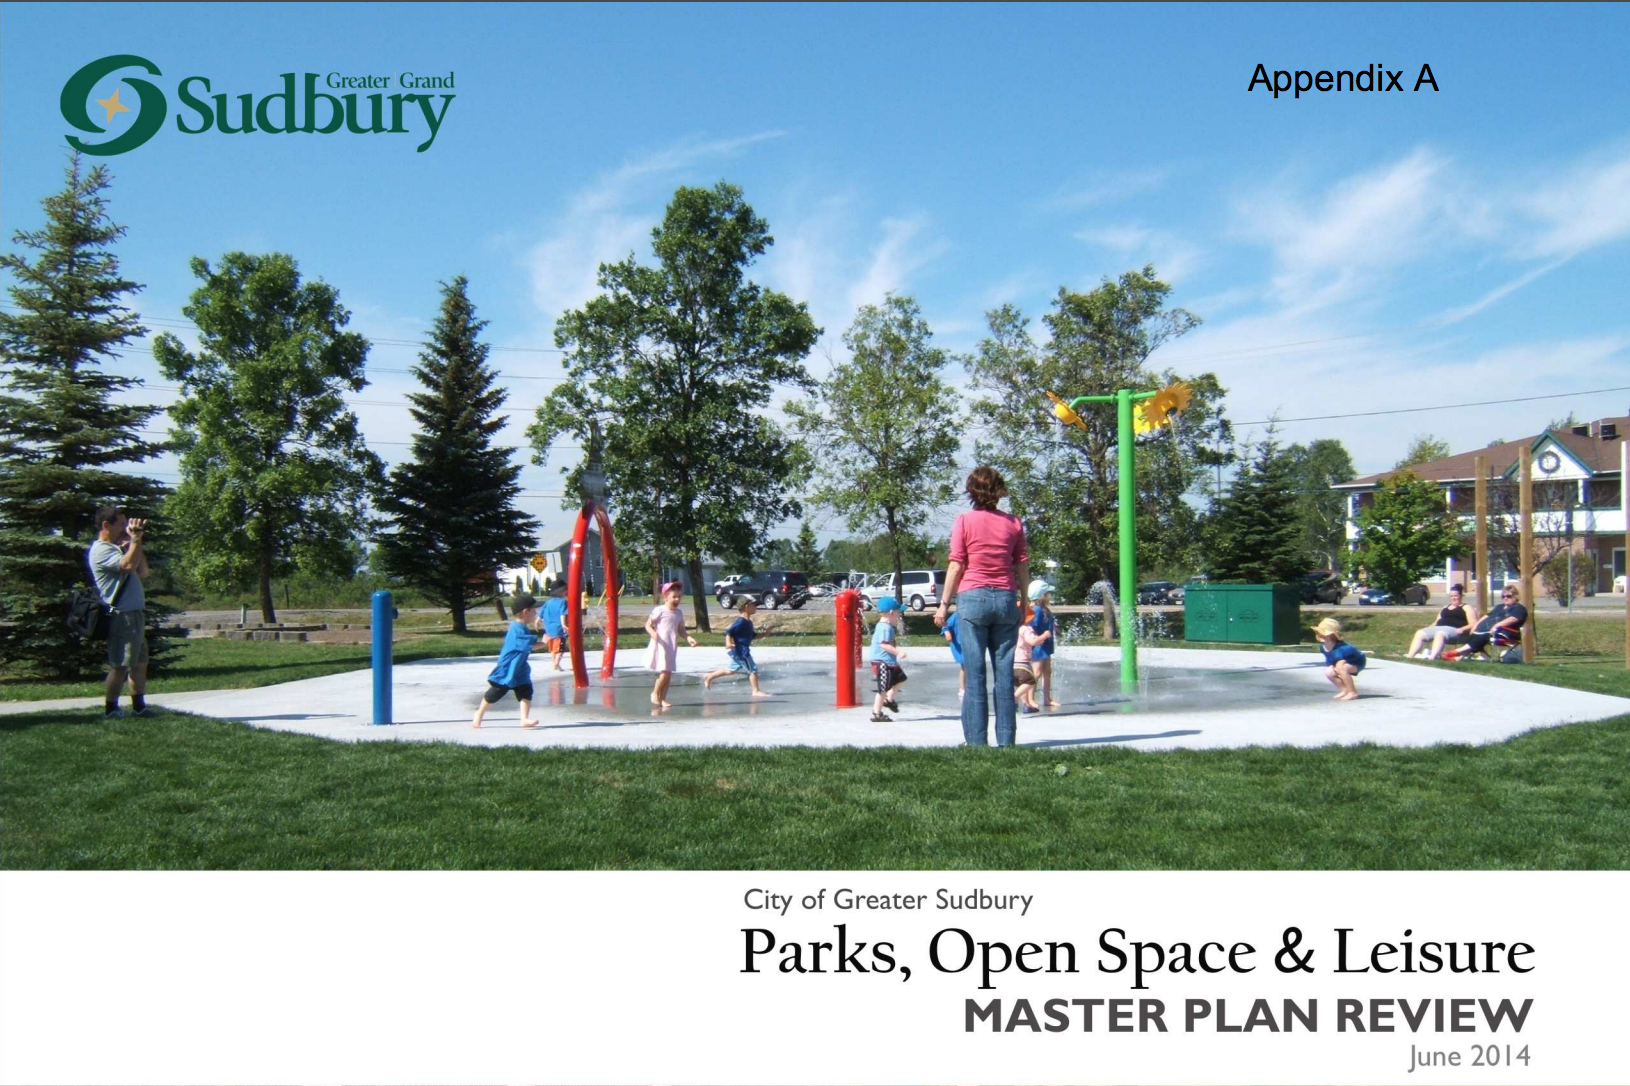 Our Mandate - According to a City of Sudbury recreational city plan from 2014, Greater Sudbury can support a double indoor field and its population does not have any indoor facility for indoor recreation during our long winters. Open Space/Leisure Master Plan 2014The Fabio Belli Foundation will contribute to the physical, mental and social well being of the community by:•     Build and operate an indoor multi-sport facility•    Create programs that promote and increase health literacy•    Emphasize the importance of sustainability•    Helping the public and private sectors work togetherThe organization will fulfill its mandate by delivering high-quality services in a cost effective manner with a focus on community satisfaction.